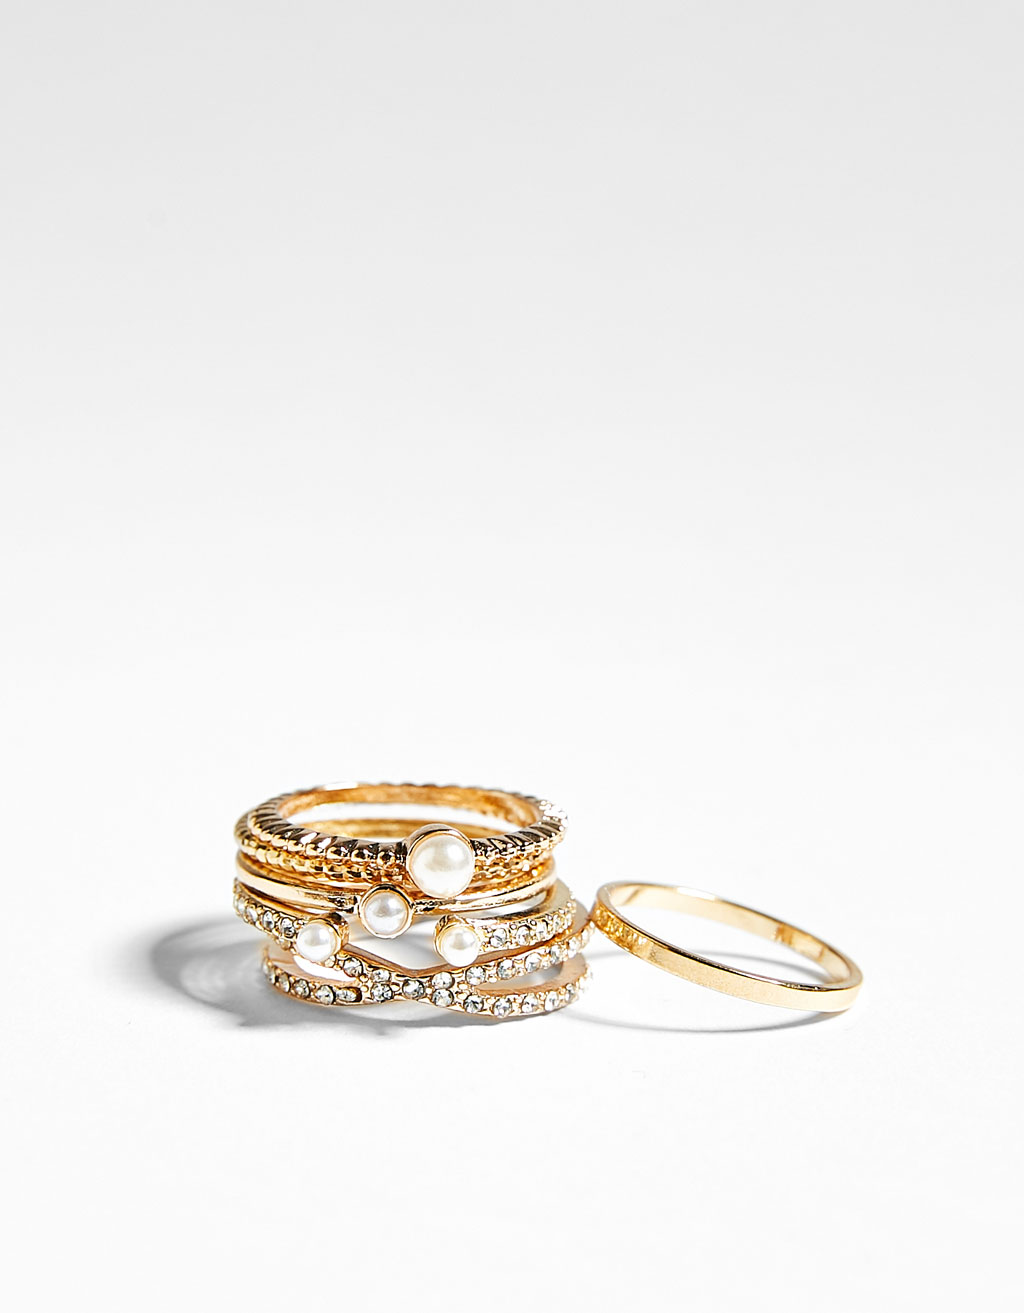 Set of 6 diamanté rings